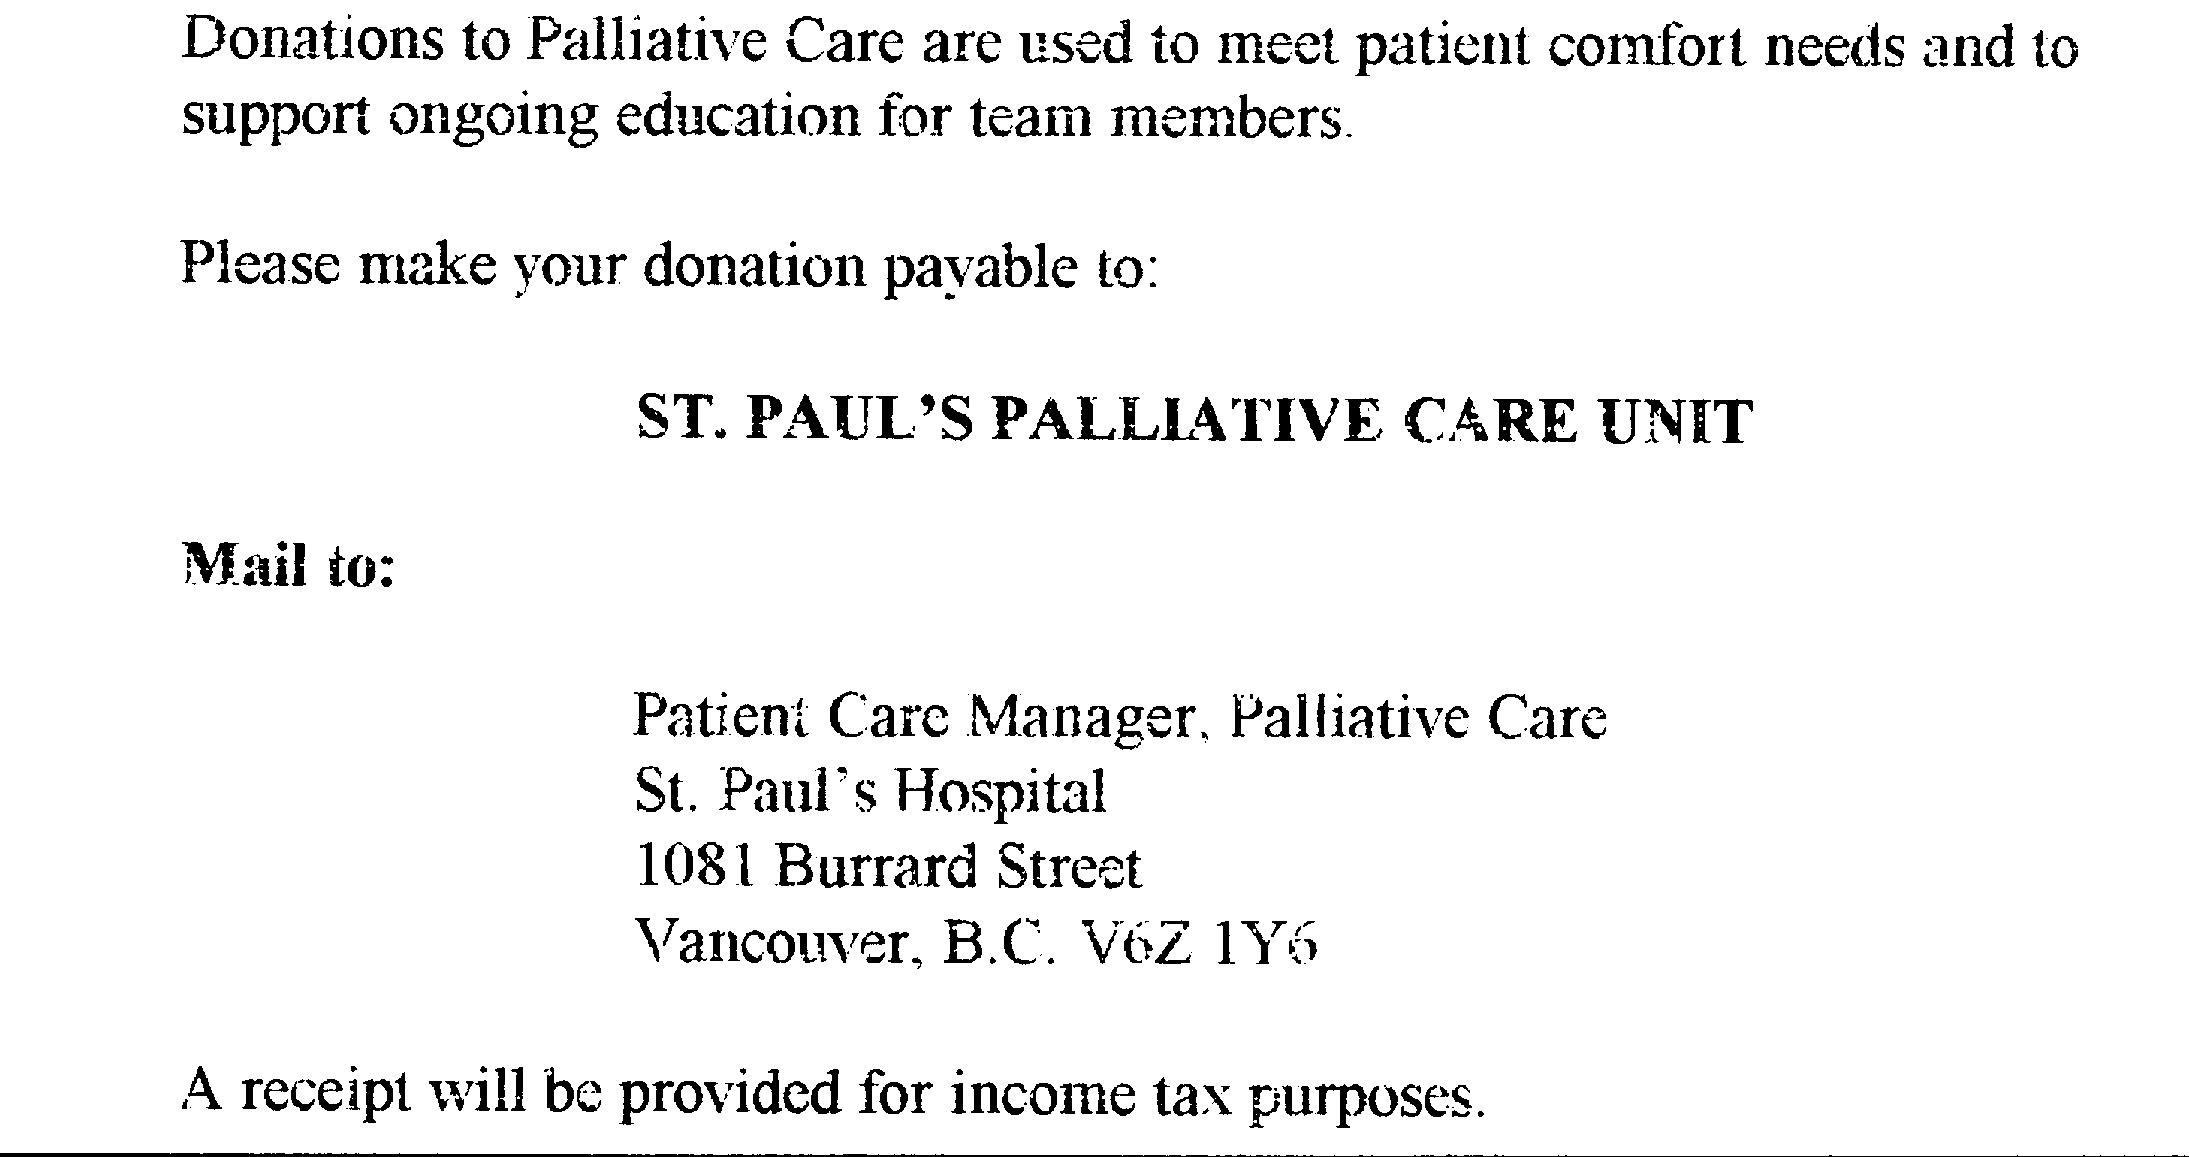 Information about the Palliative Care Unit at Saint Paul's Hospital, Vancouver, British Columbia